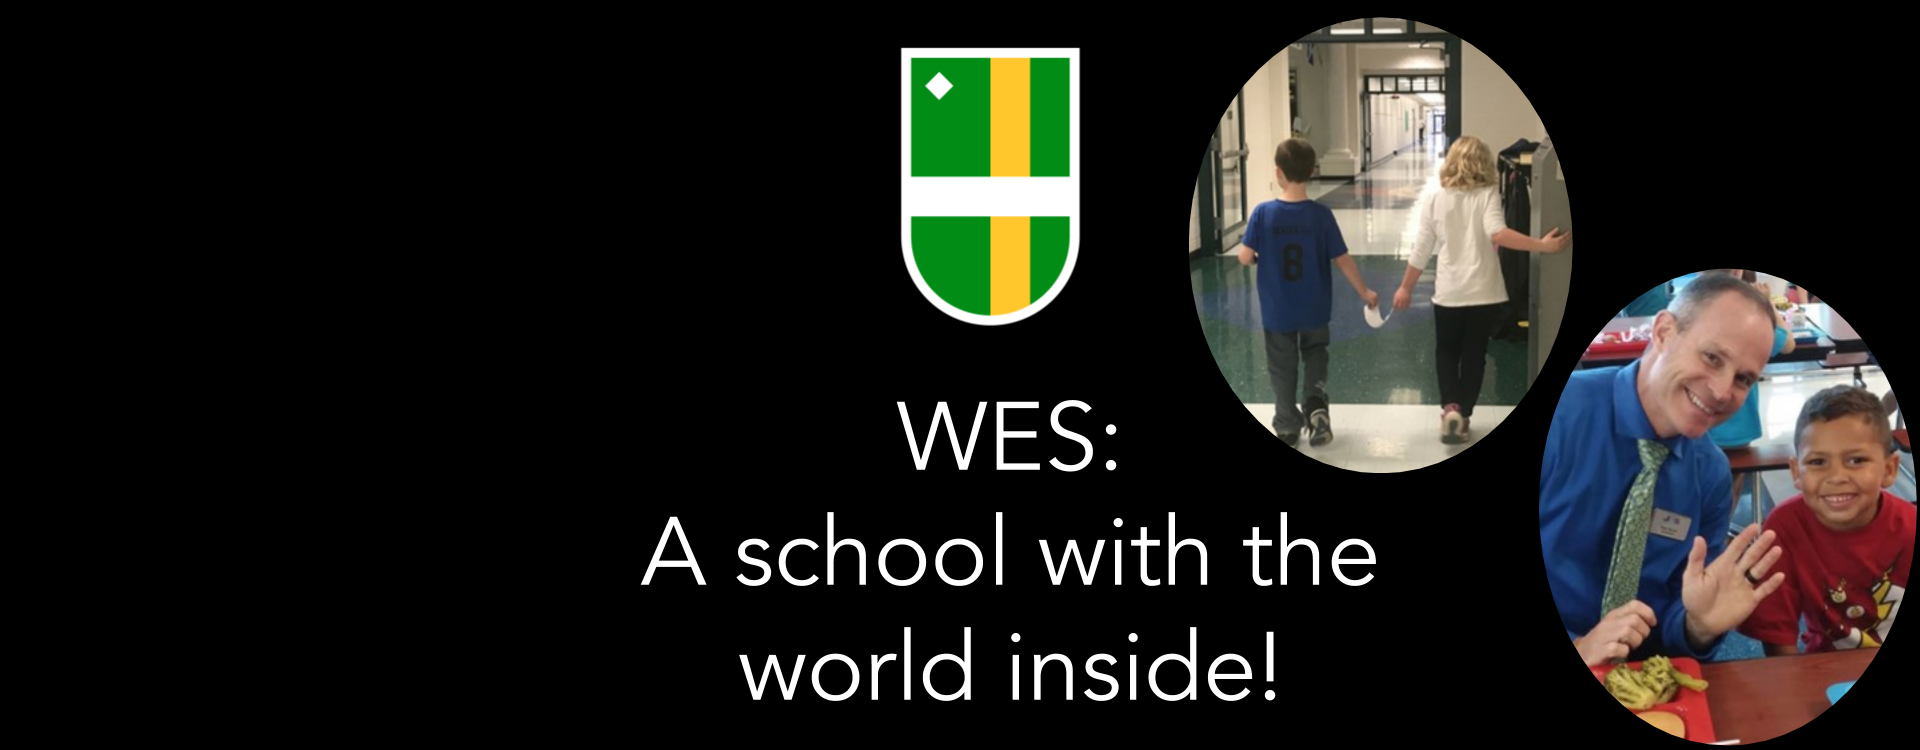 School with the world inside